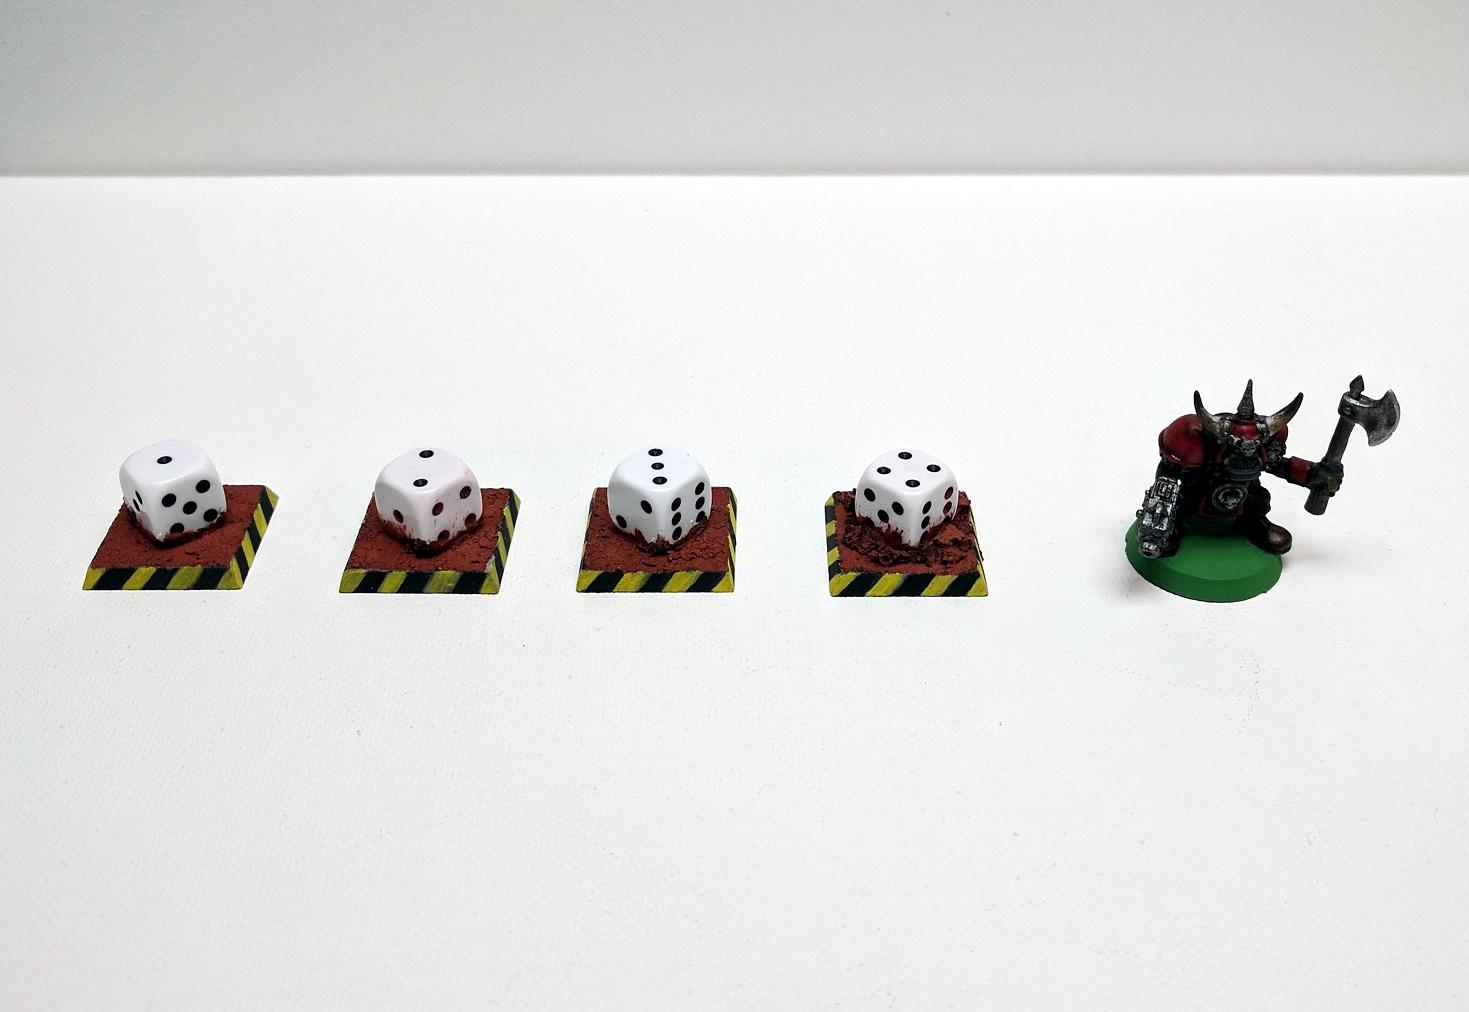 Objective Marker, Objective Markers with Dice